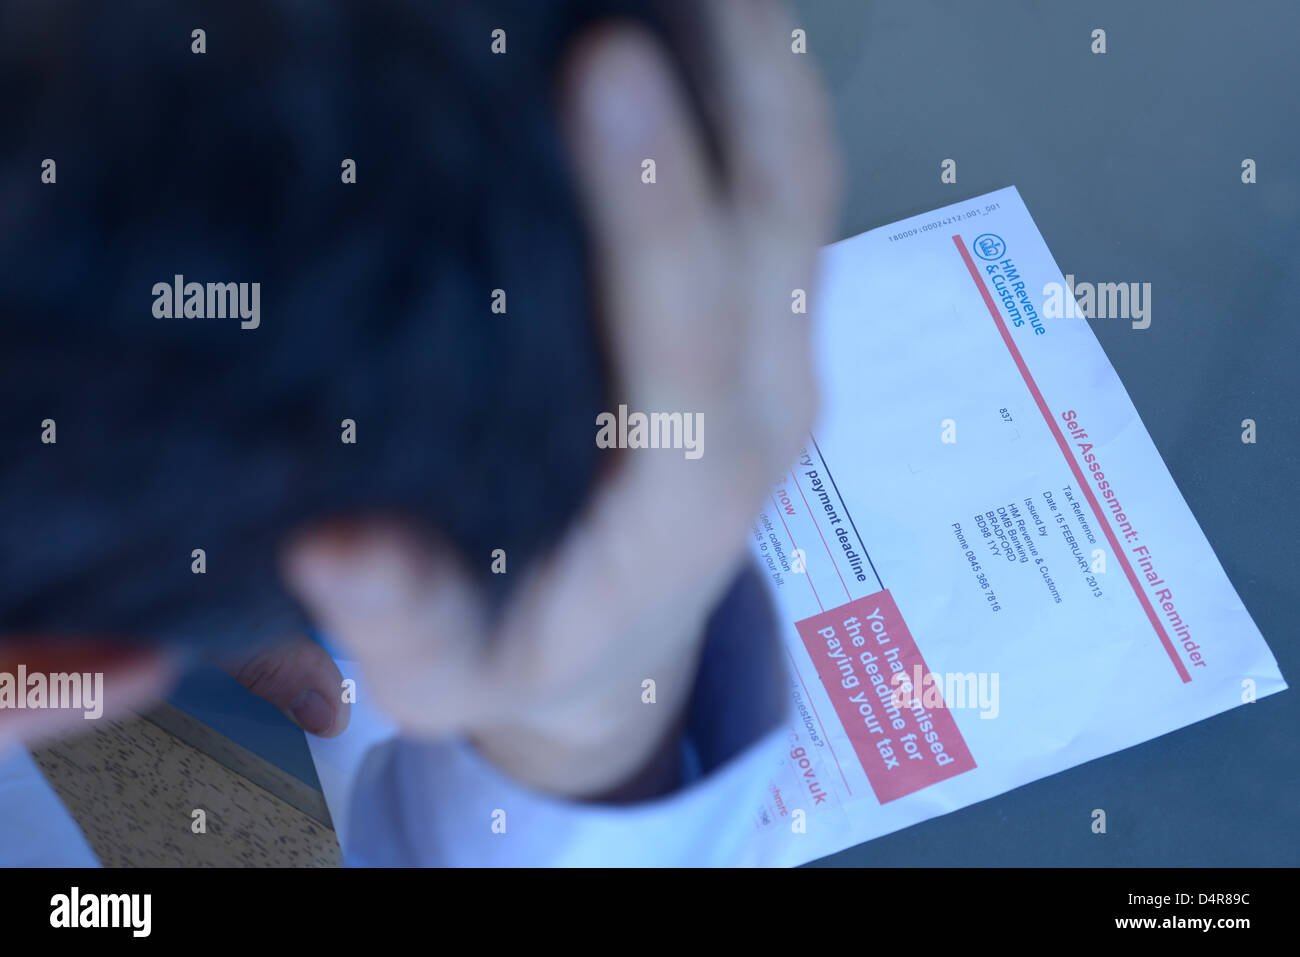 HM revenue & customs, HMRC self assessment final demand reminder letter. Tax reference and name have been removed. - Stock Image